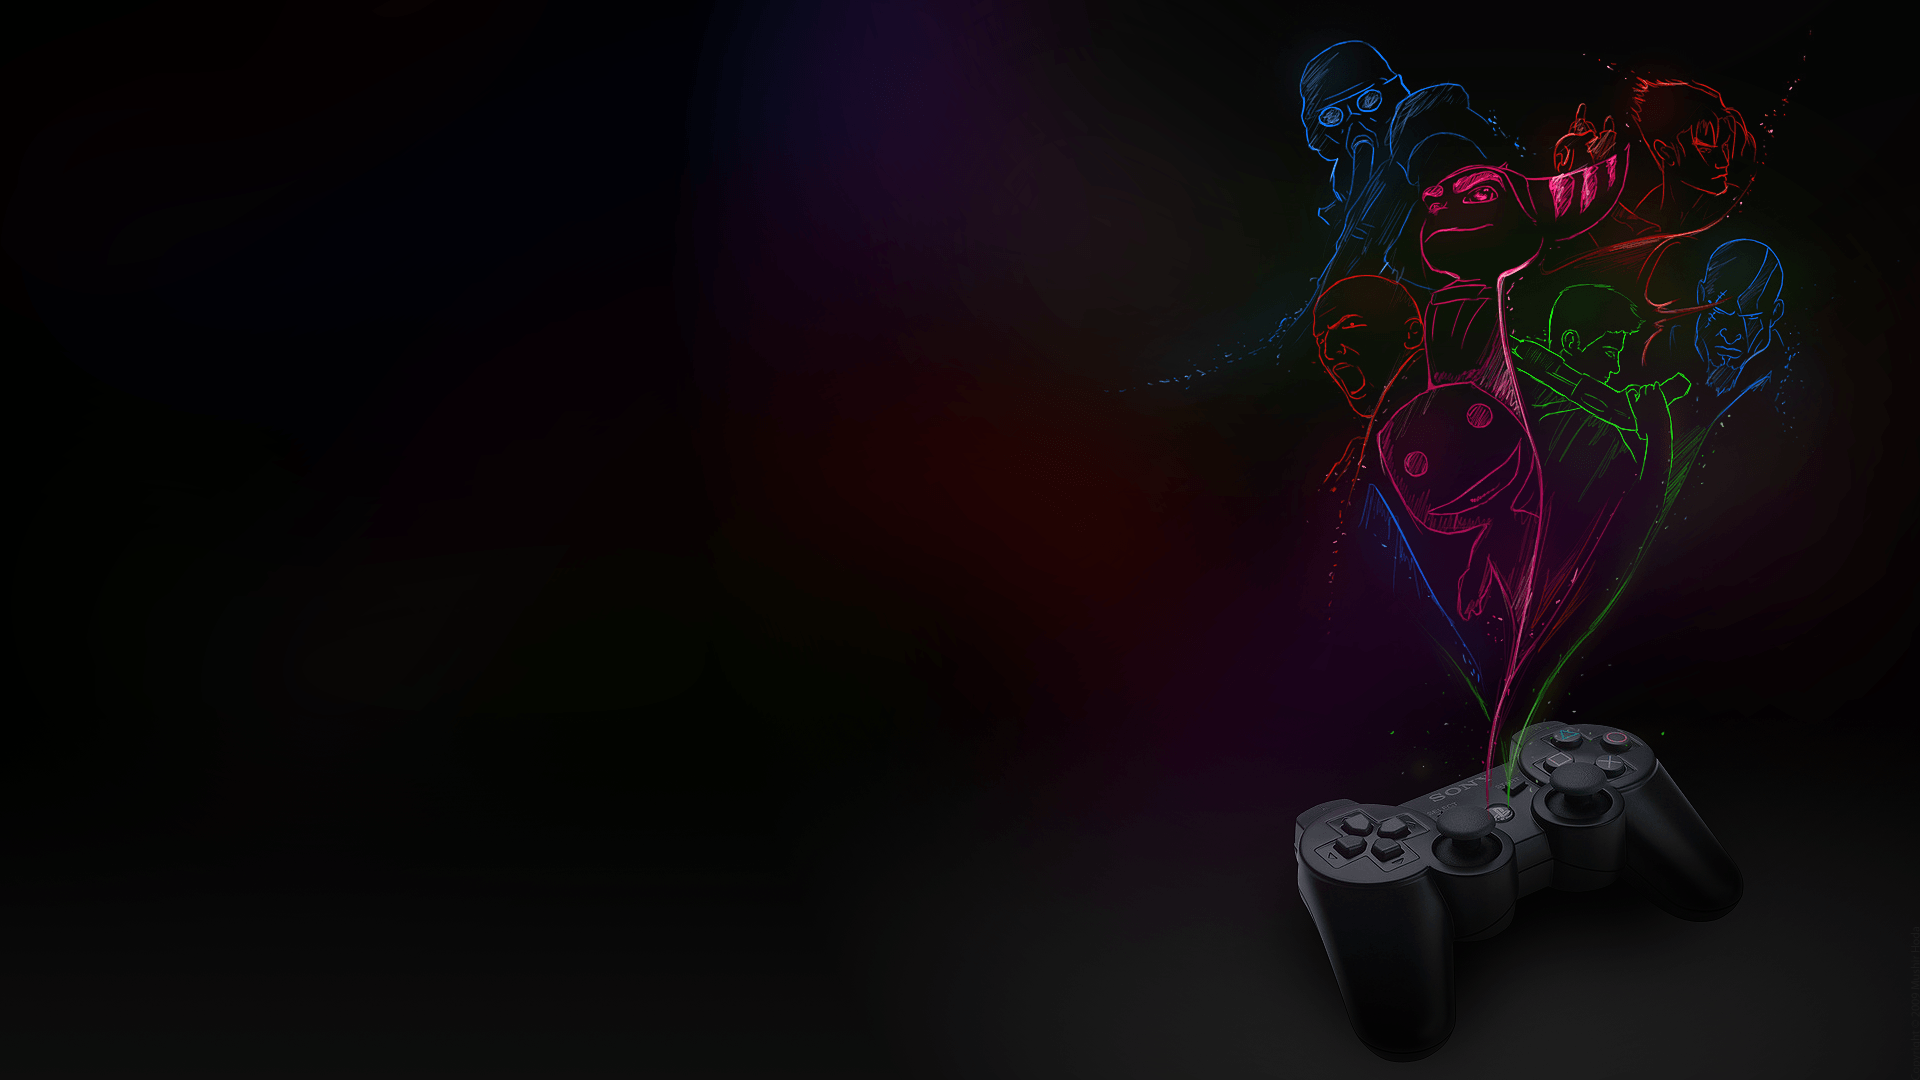 1920x1080 PS3 Wallpaper I made - PlayStation 3 - Giant Bomb